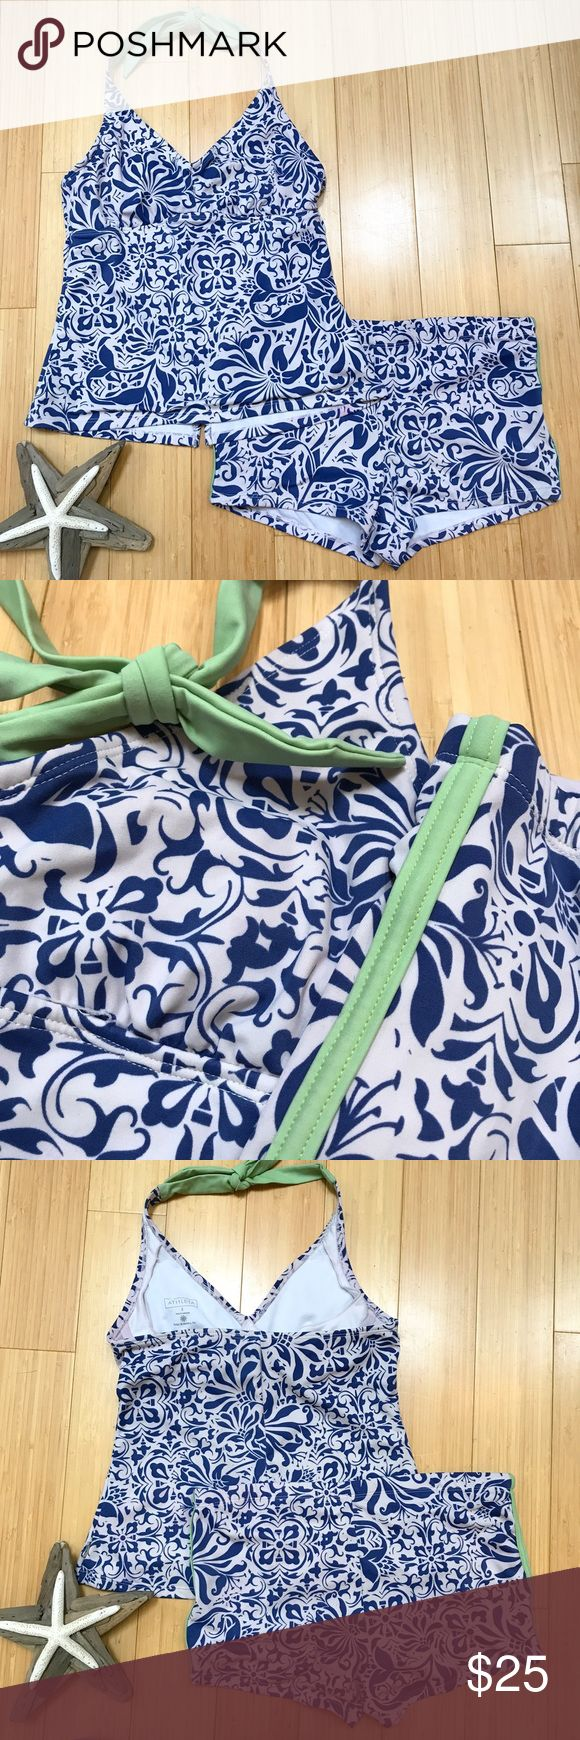 ATHLETA tankini, M. Cute blue and white tankini by Athleta. The bottoms are a size medium. The top is a category two which fits 36C, 34D, 32DD - I feel it would fit a small or medium. Structurally these are in good condition but they look like they were washed with something pink. The exterior white is light gray-ish pink, and there is a little running on the green tie. Neither is particularly noticeable while you are wearing it, but please be aware. No bra pads present. Super cute and…